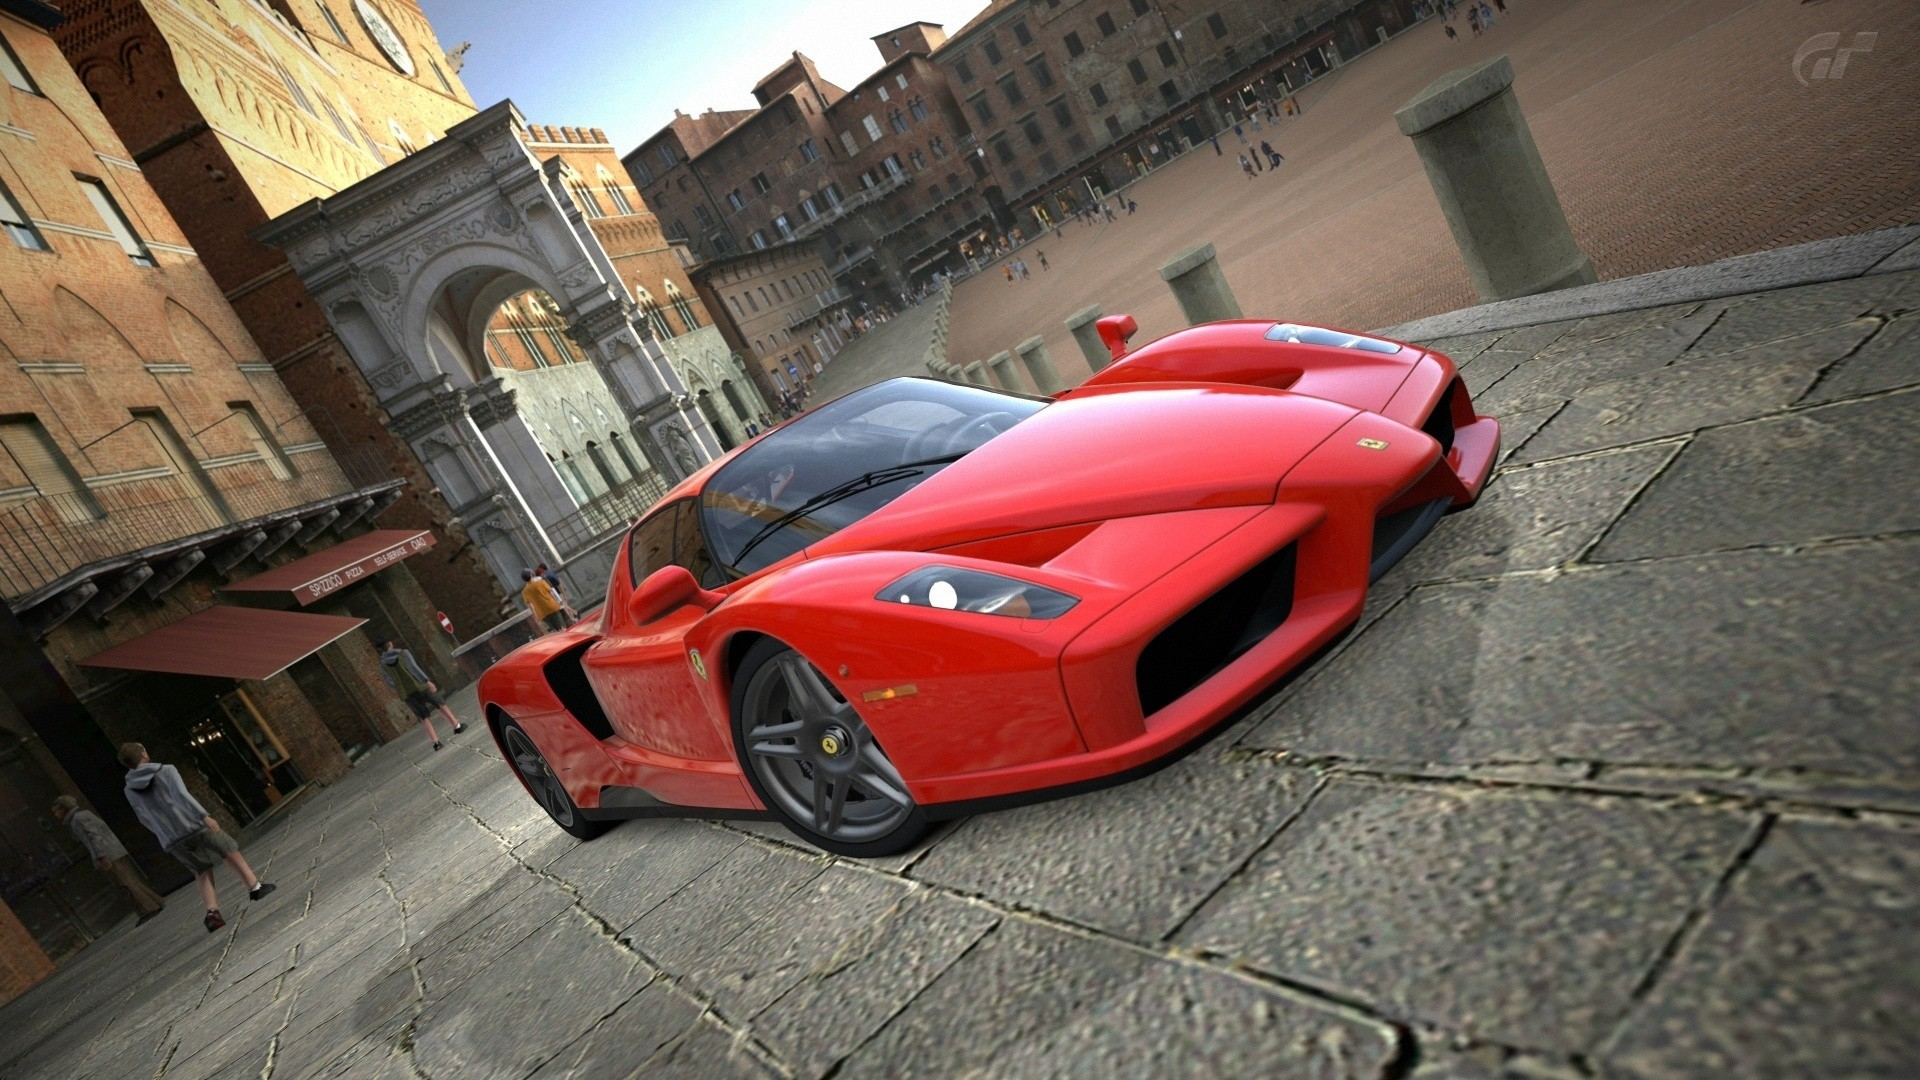 1920x1080 Ferrari Enzo Sports Car HD Wallpaper